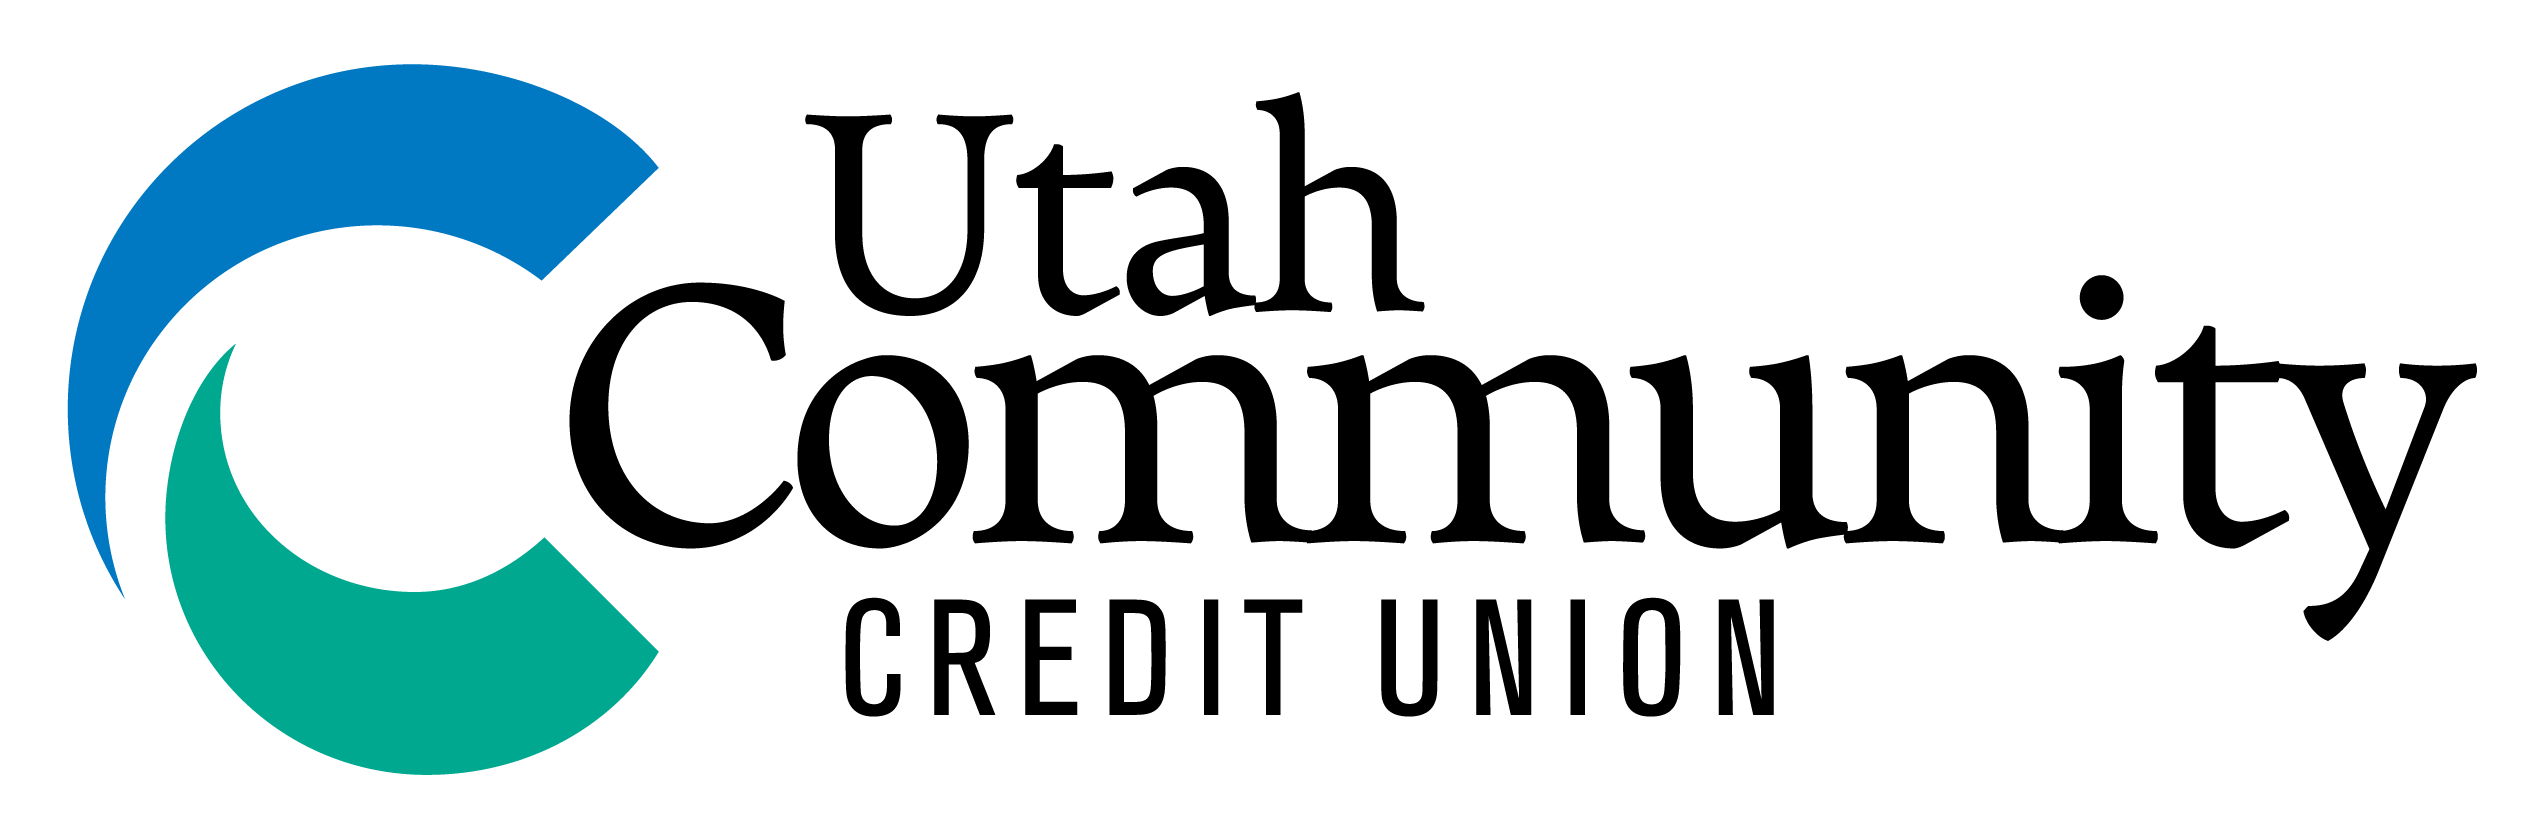 UCCU Logos_Full Logo_full color.png